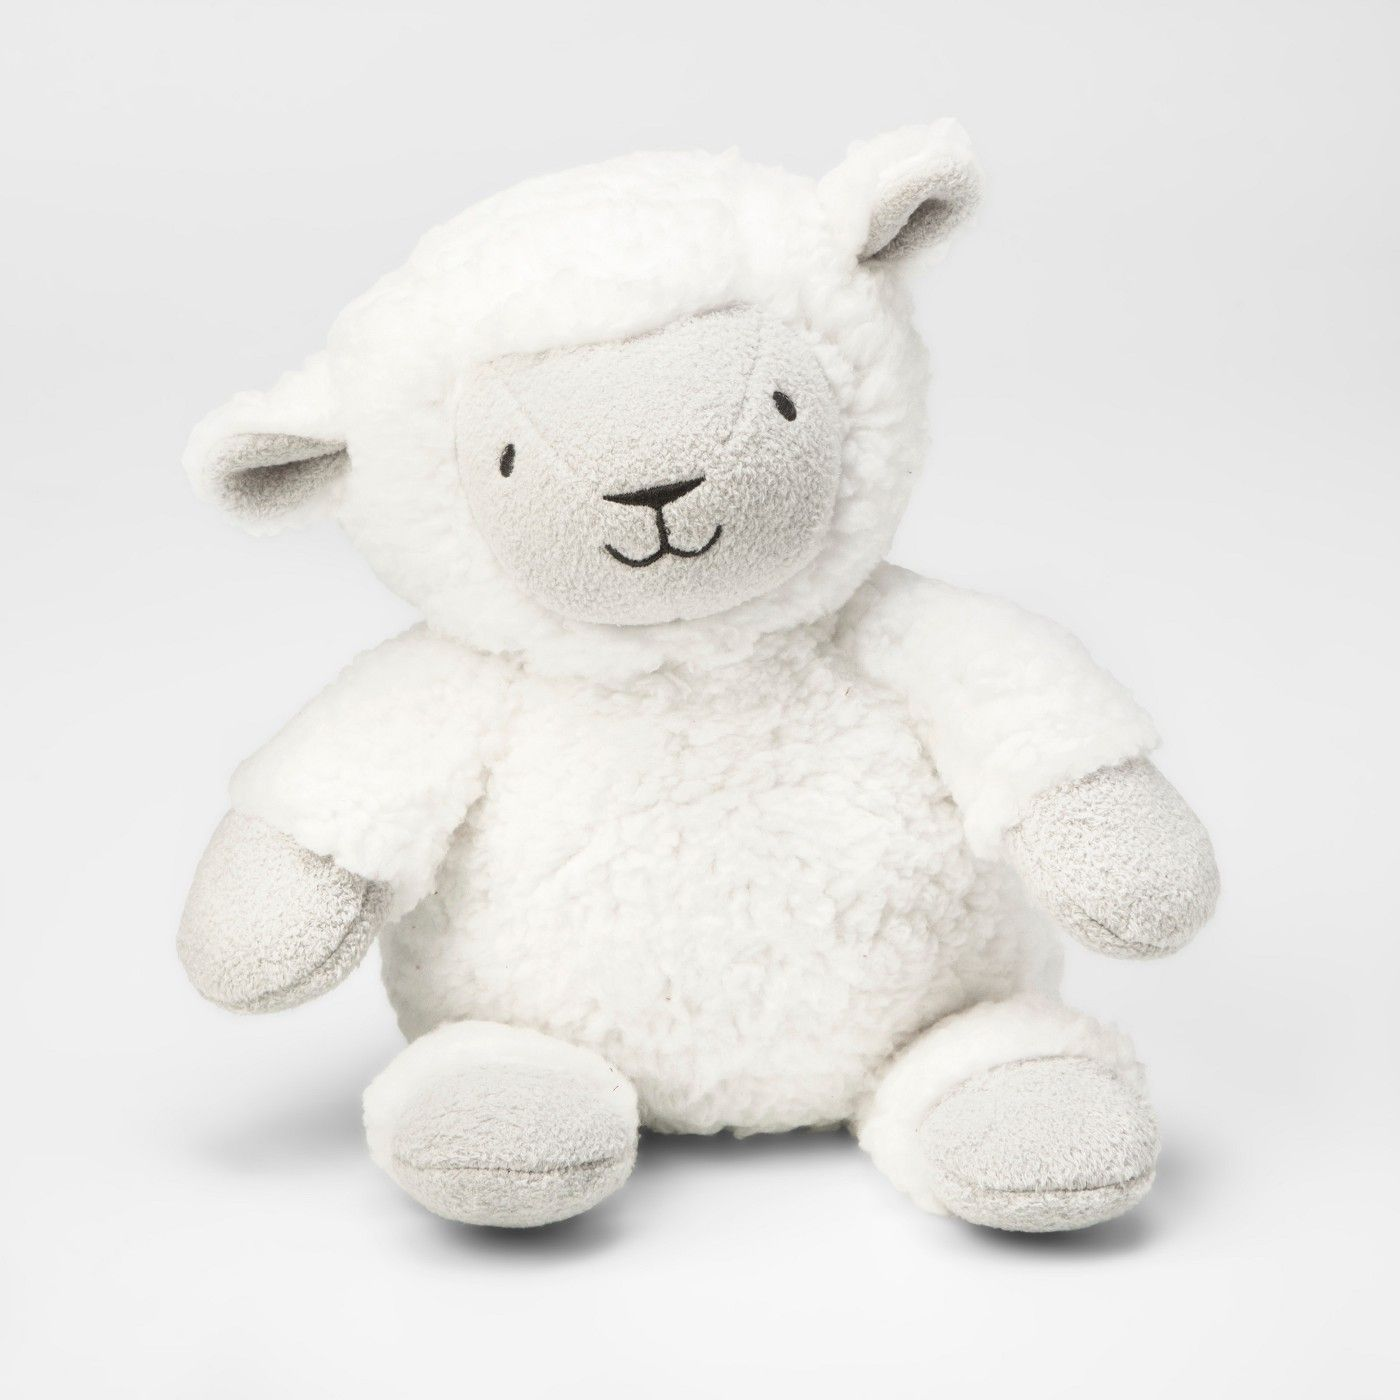 2eeb418a453 Adorable plush toy lamb by Cloud Island from Target. Super soft! Perfect  gift for a baby shower.  plushtoy  plushlamb  stuffedanimal  babytoy FTC ...